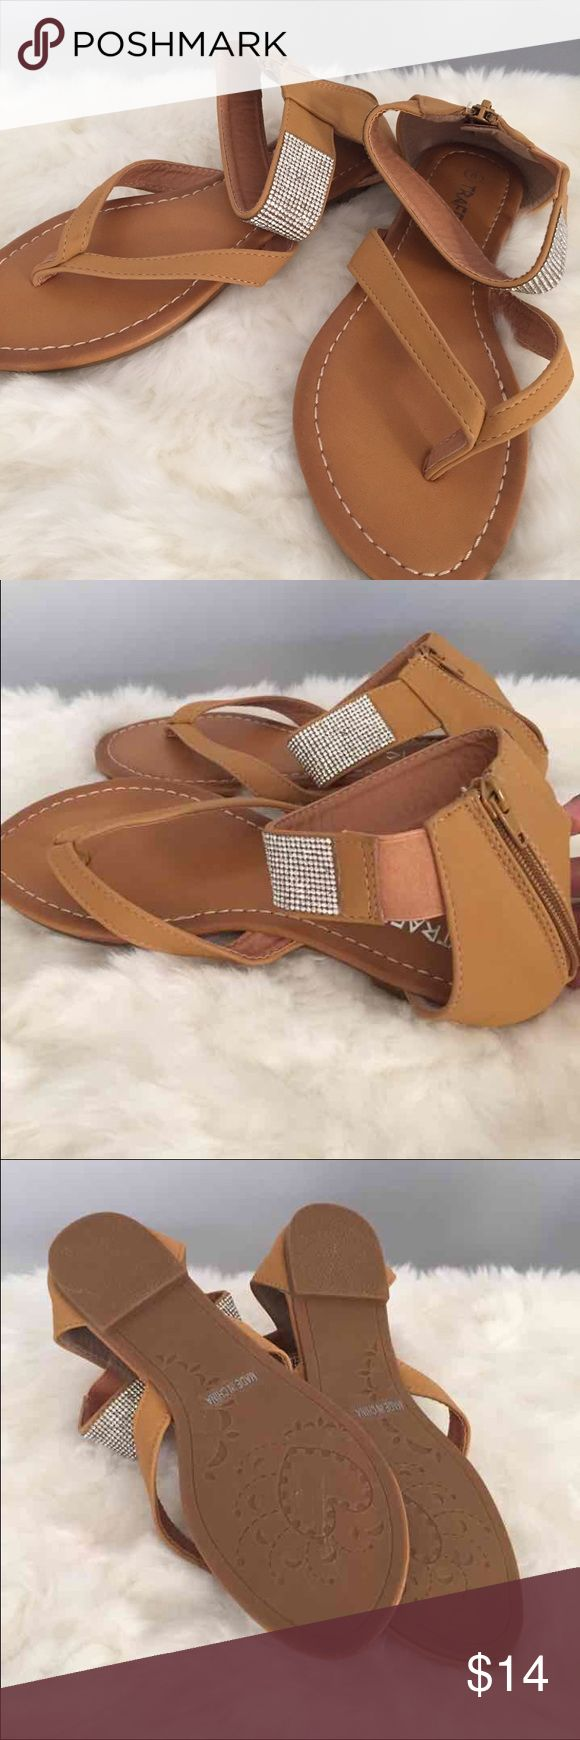 Tan ankle strap sandals Brand new, ankle strap flat sandals. Very versatile. Rhinestones around the ankle (none are missing). Zips up in the back. Size 8. Shoes Sandals